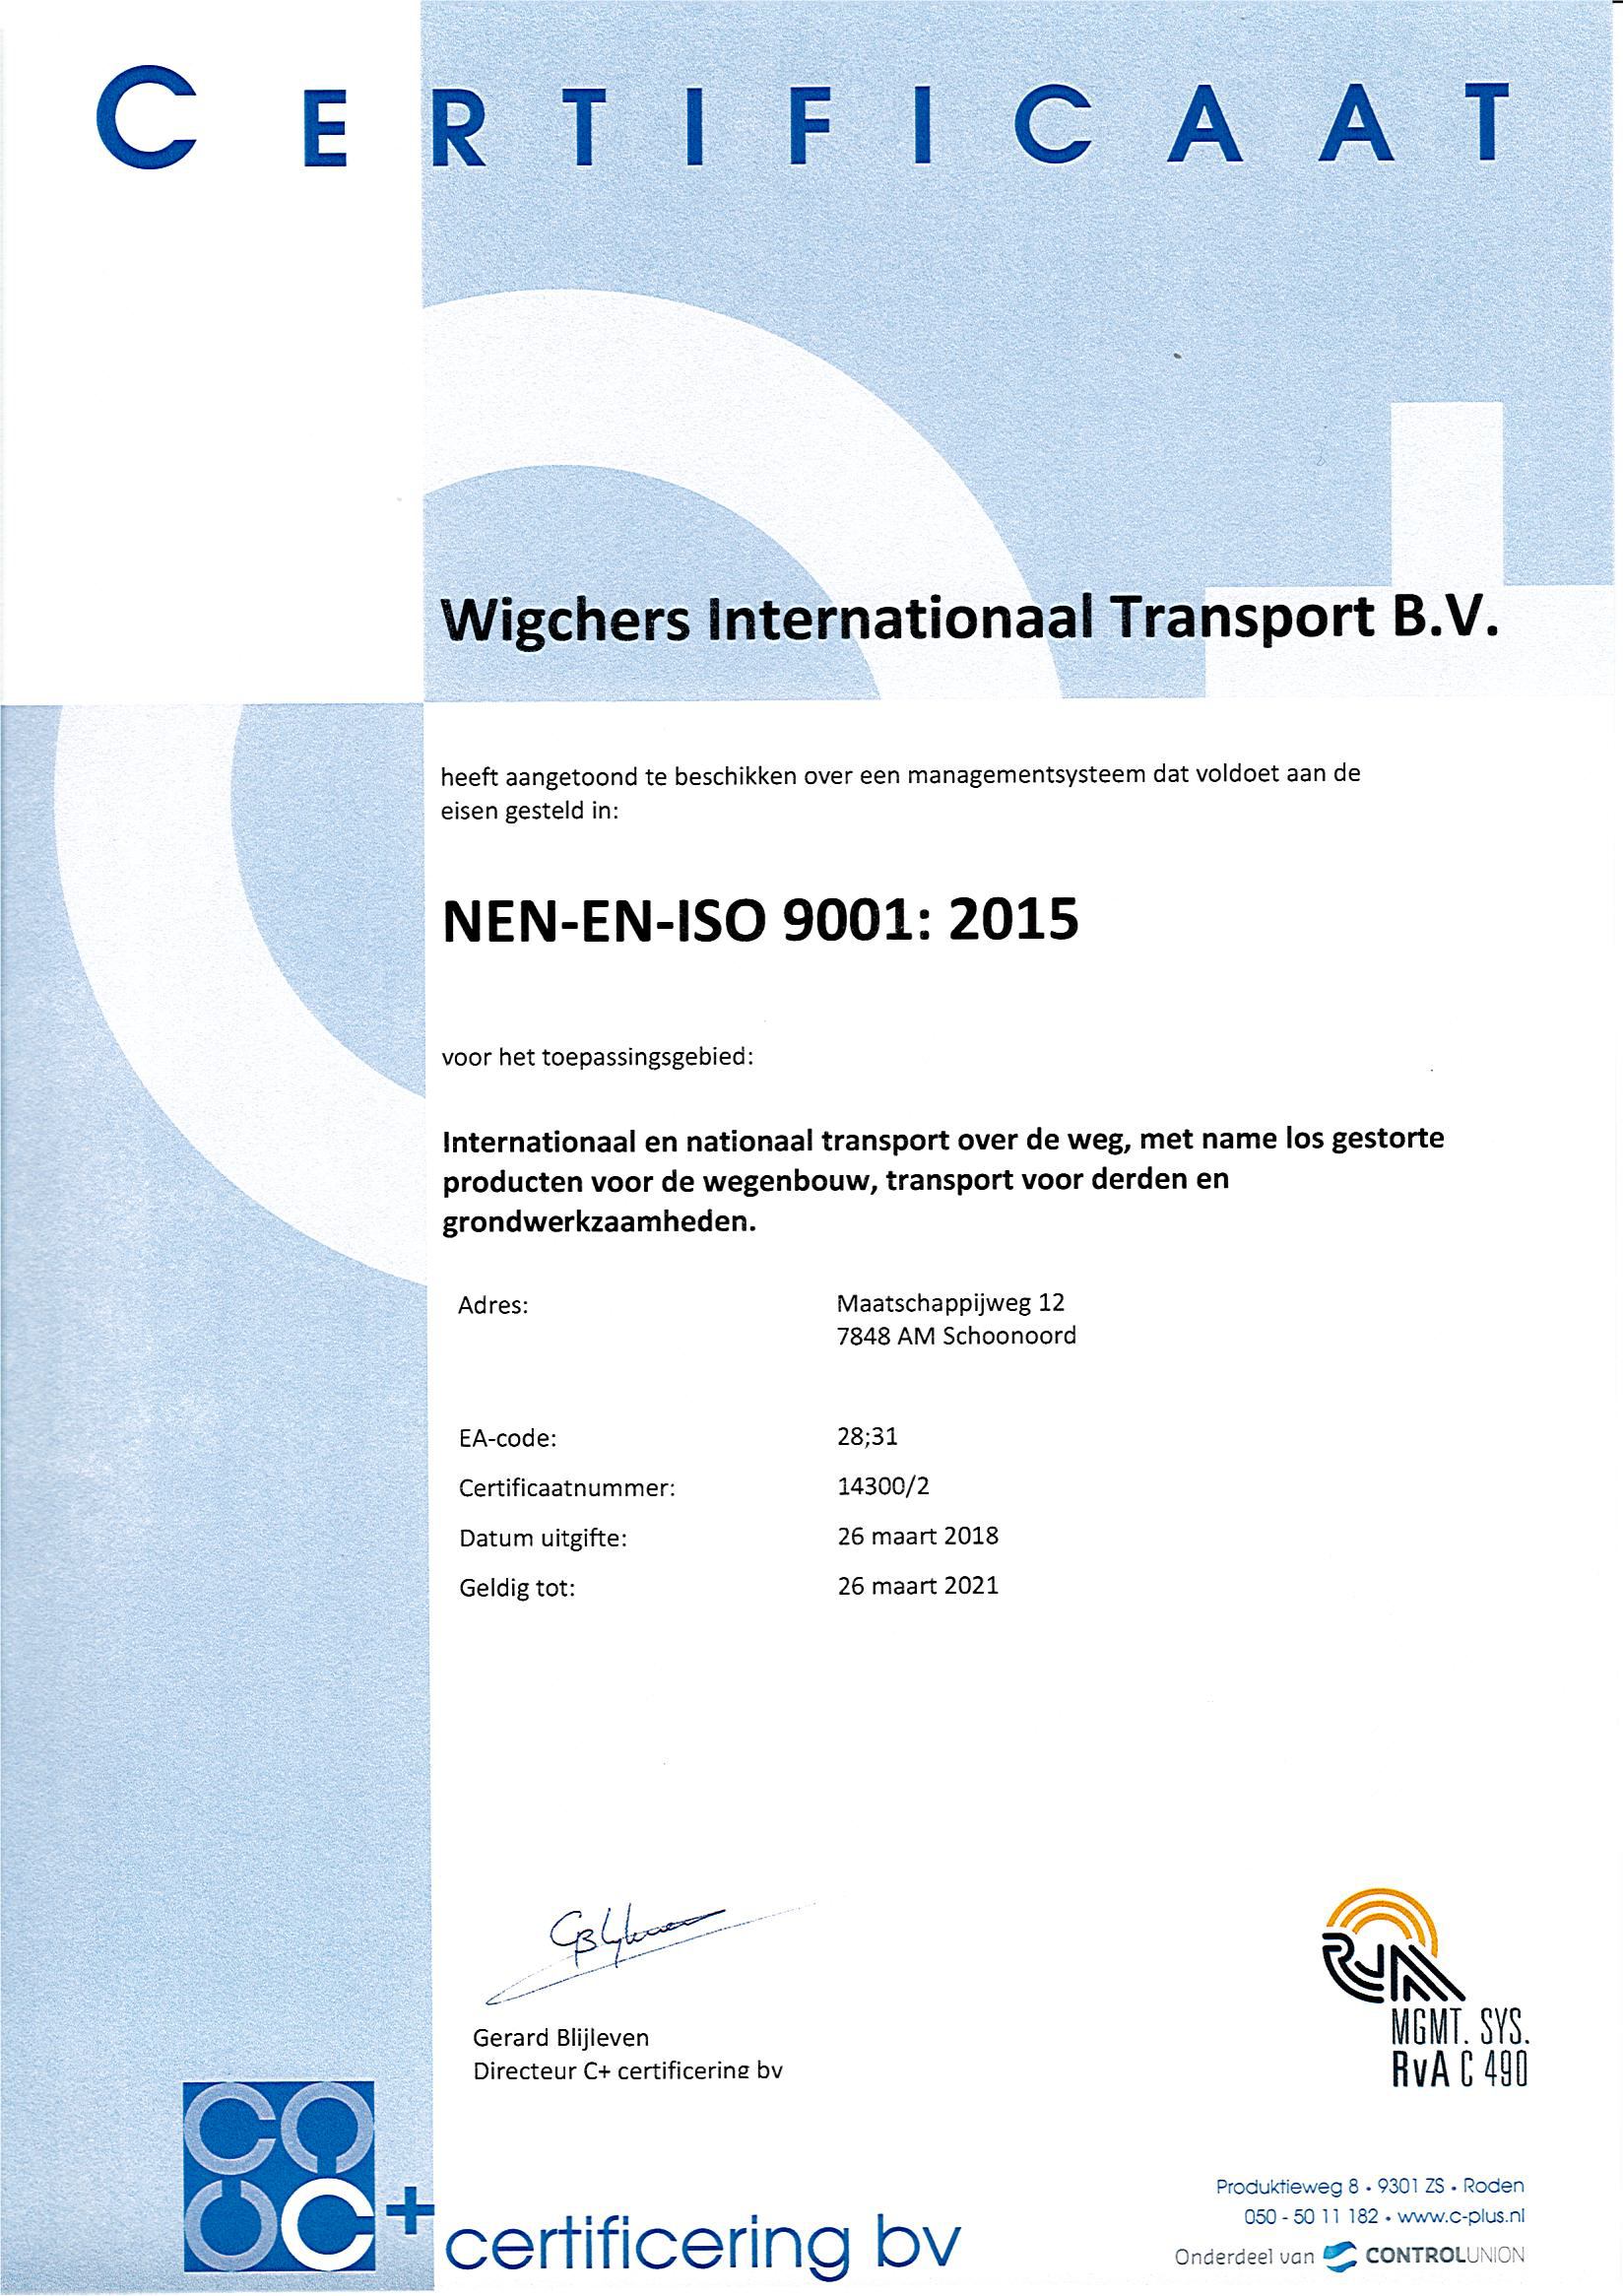 https://www.wigchers.nl/wp-content/uploads/2019/11/ISO-9001-2015.png